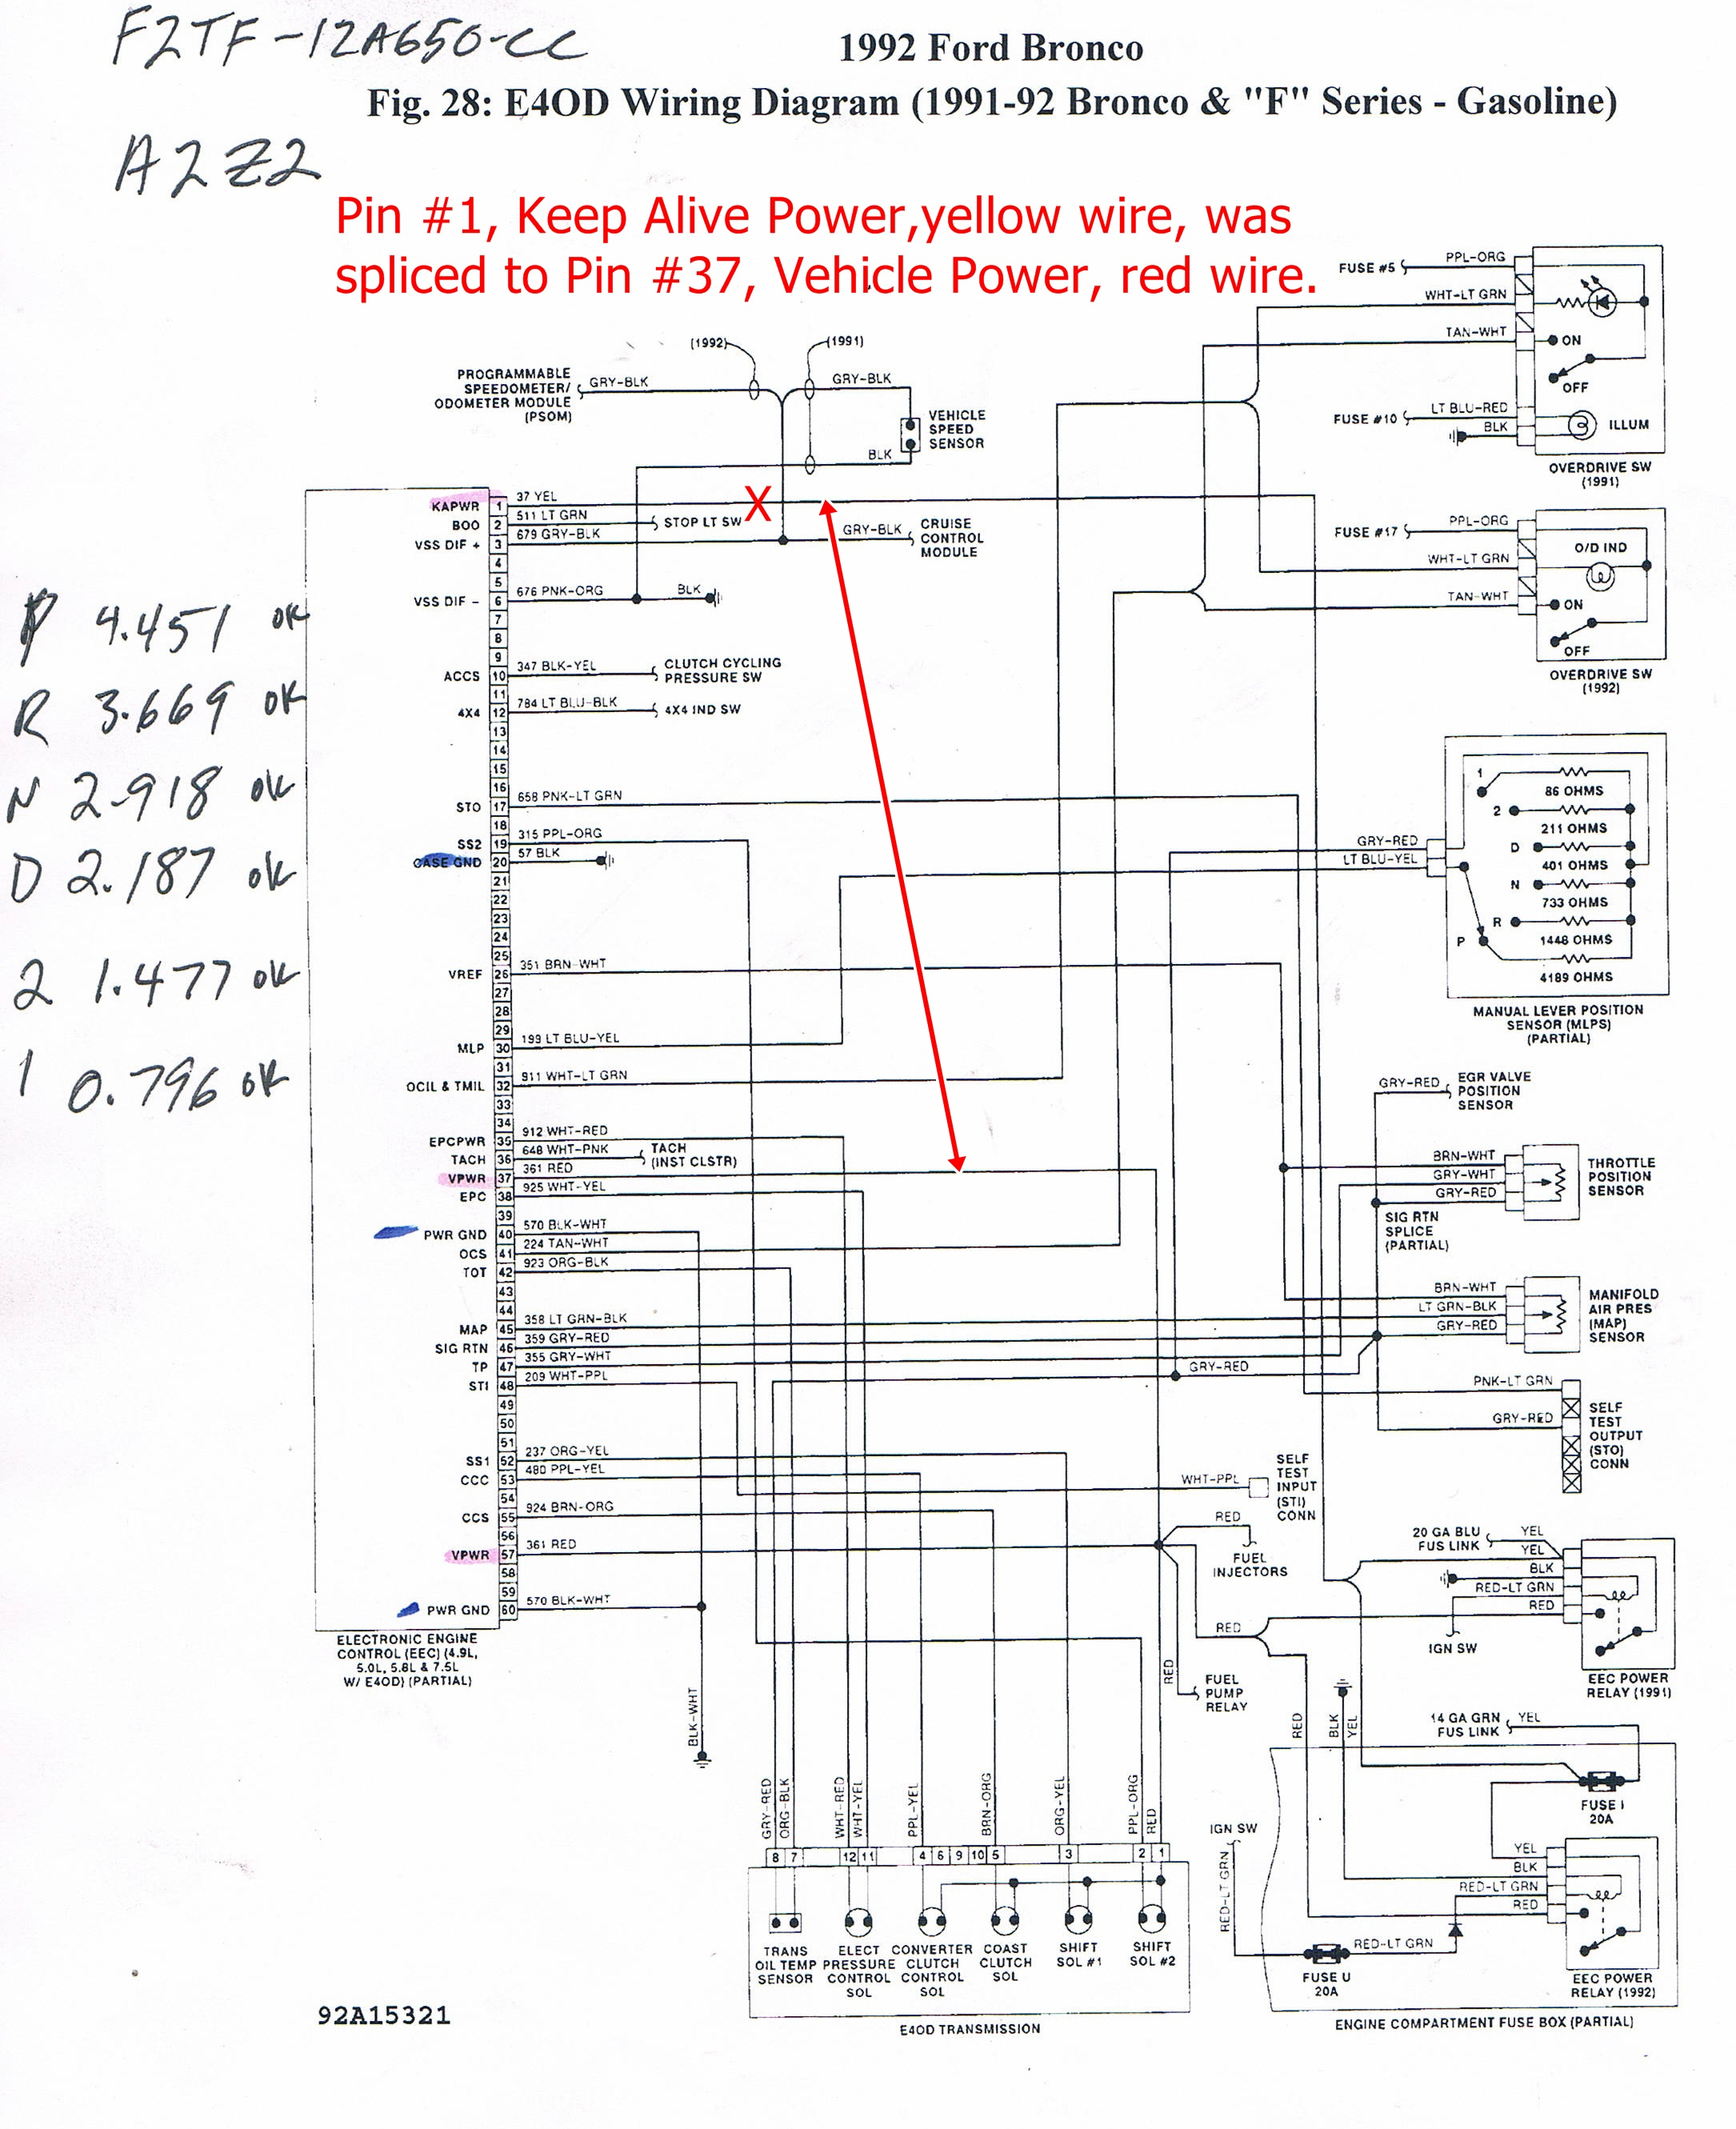 Lexus Rx300 Radio Wiring Diagram | Wiring Library - Harley Davidson Headlight Wiring Diagram